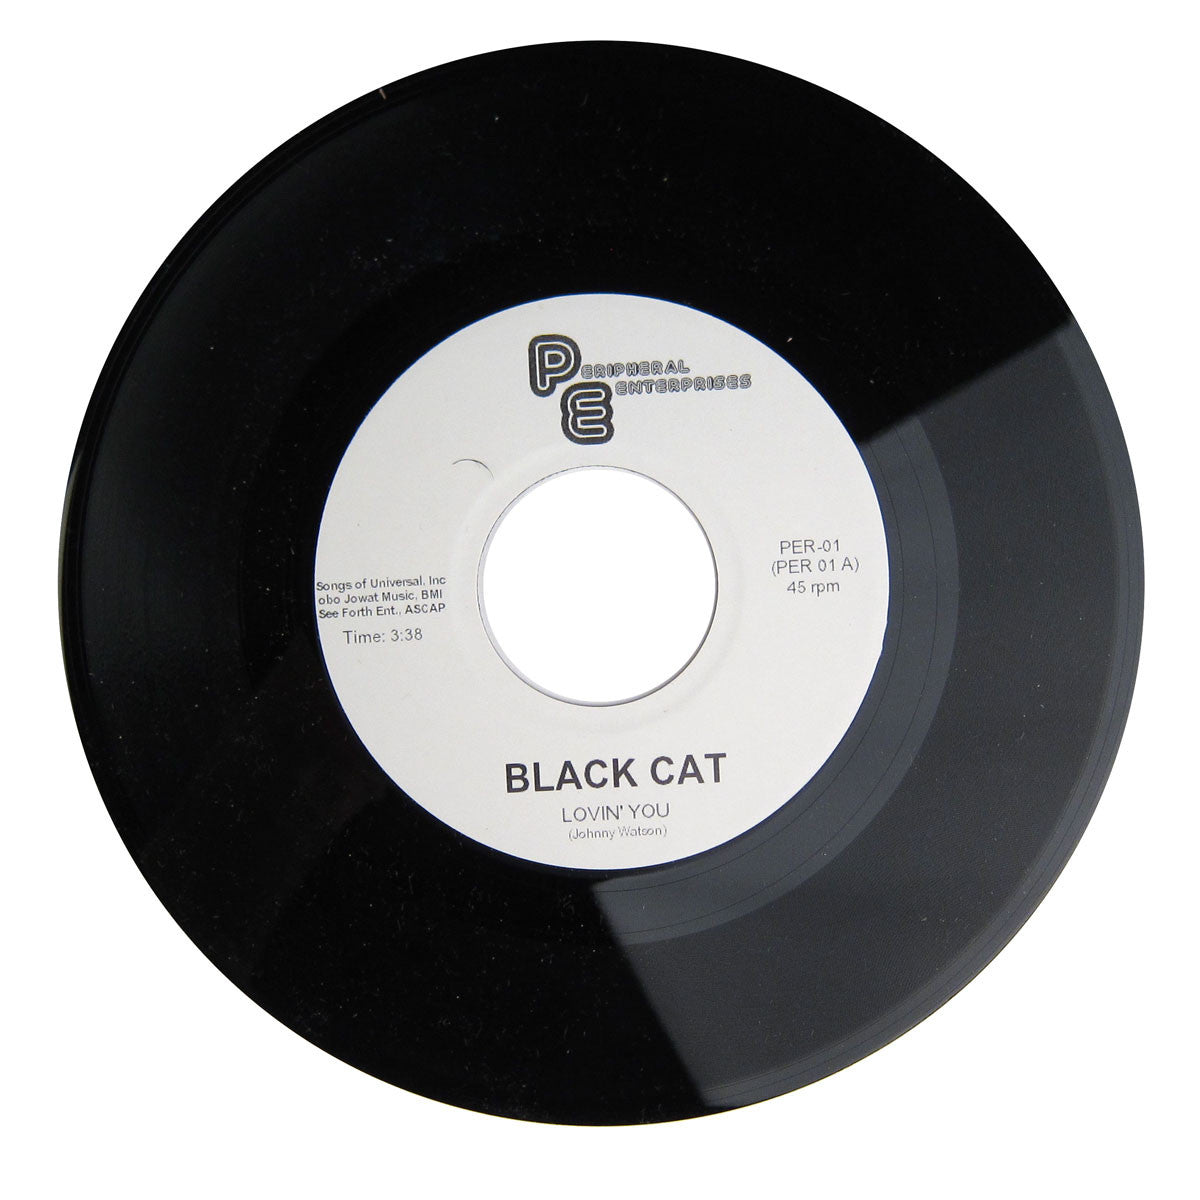 Black Cat: Lovin' You / Kingston Cardova Vinyl 7""